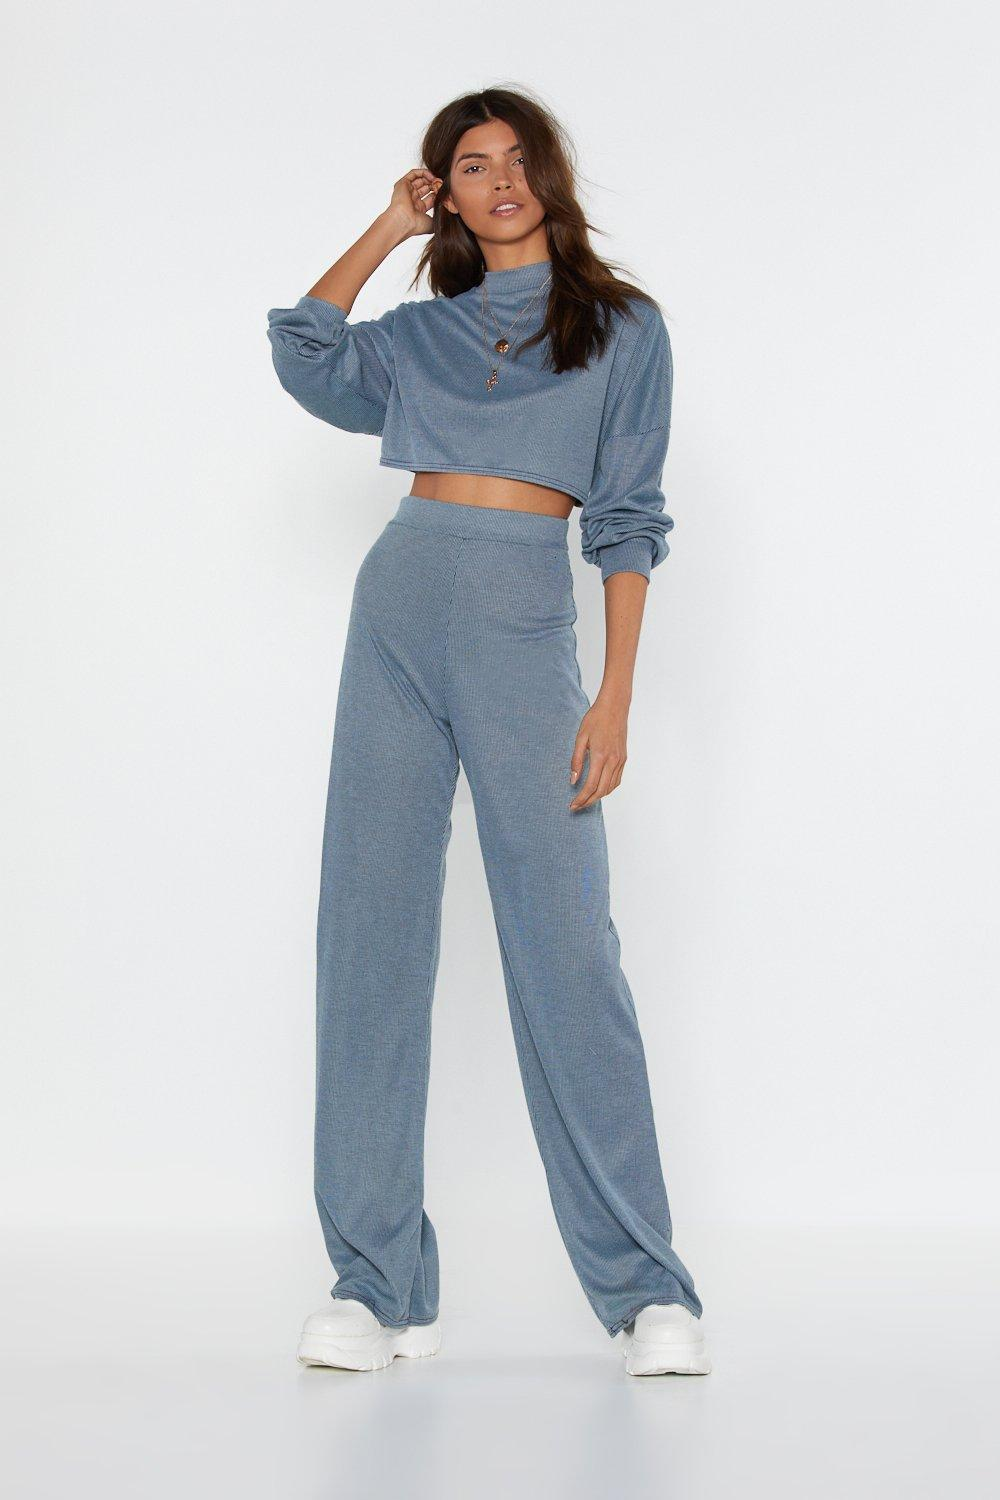 Image of Womens Back to Basics Crop Top and Pants Lounge Set - Blue